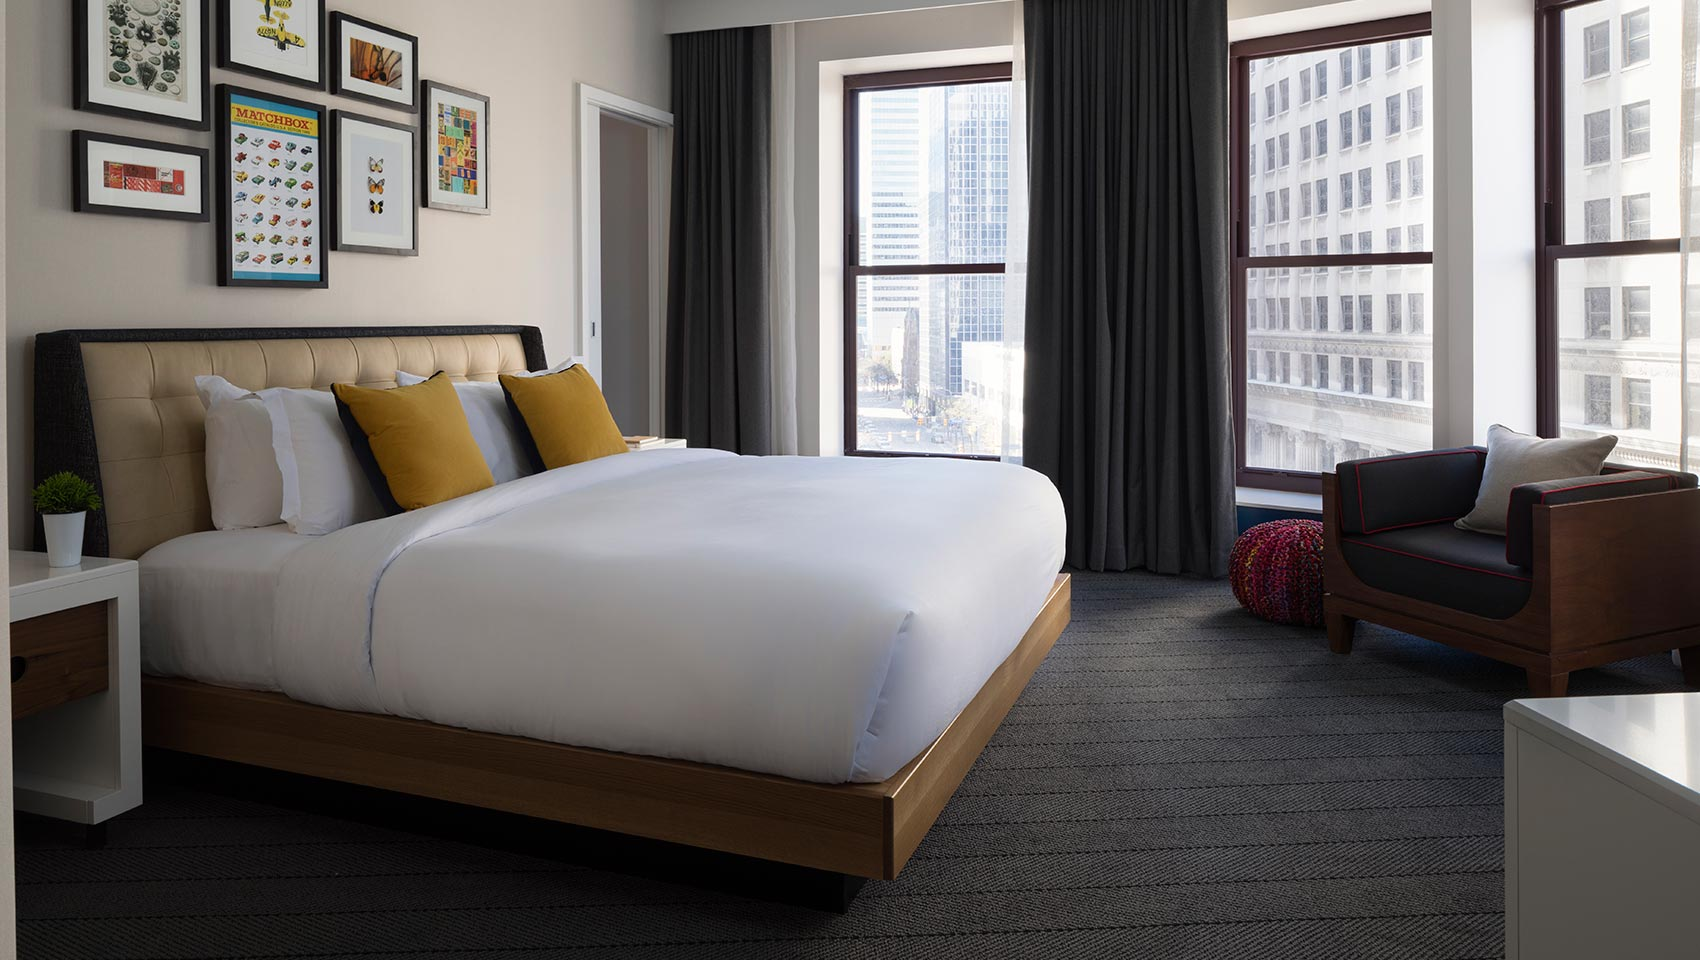 The Kimpton Schofield King Guest Room with View